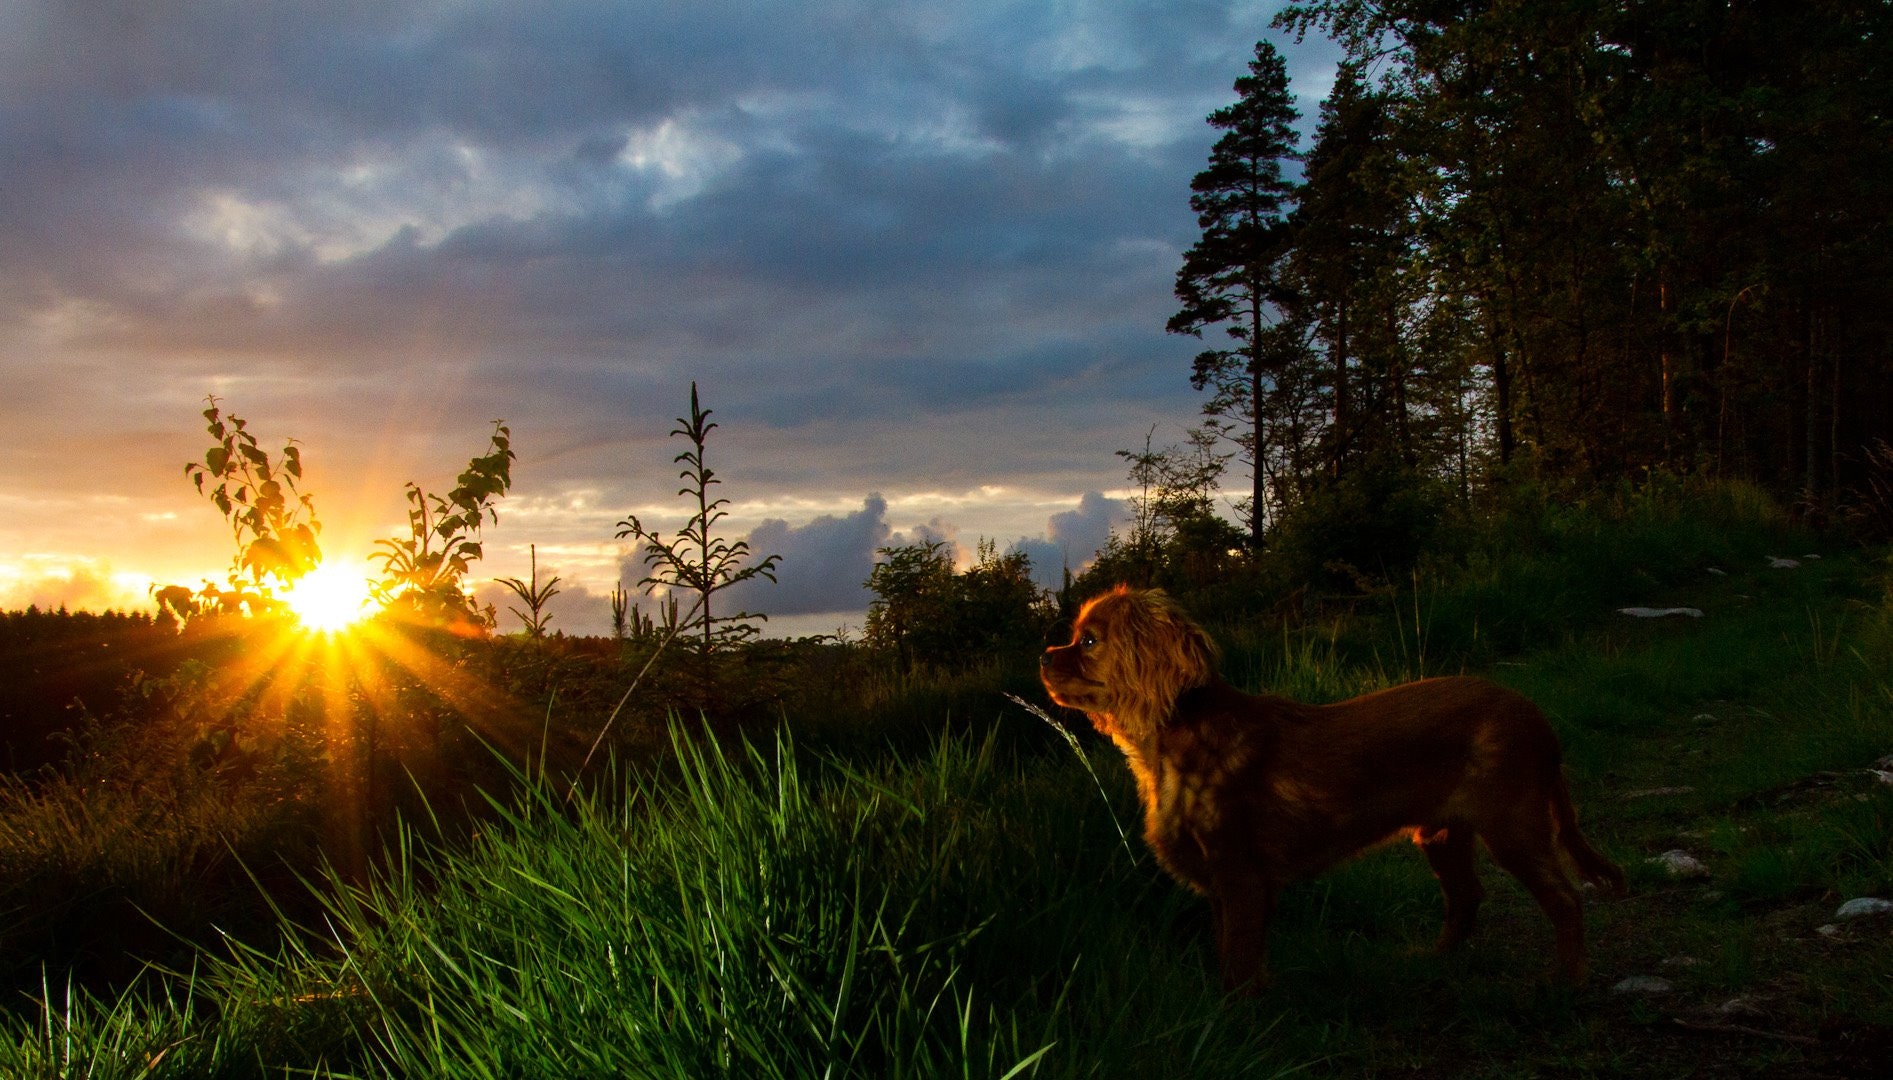 Photograph Mio and the sunset by Morten Holbein on 500px